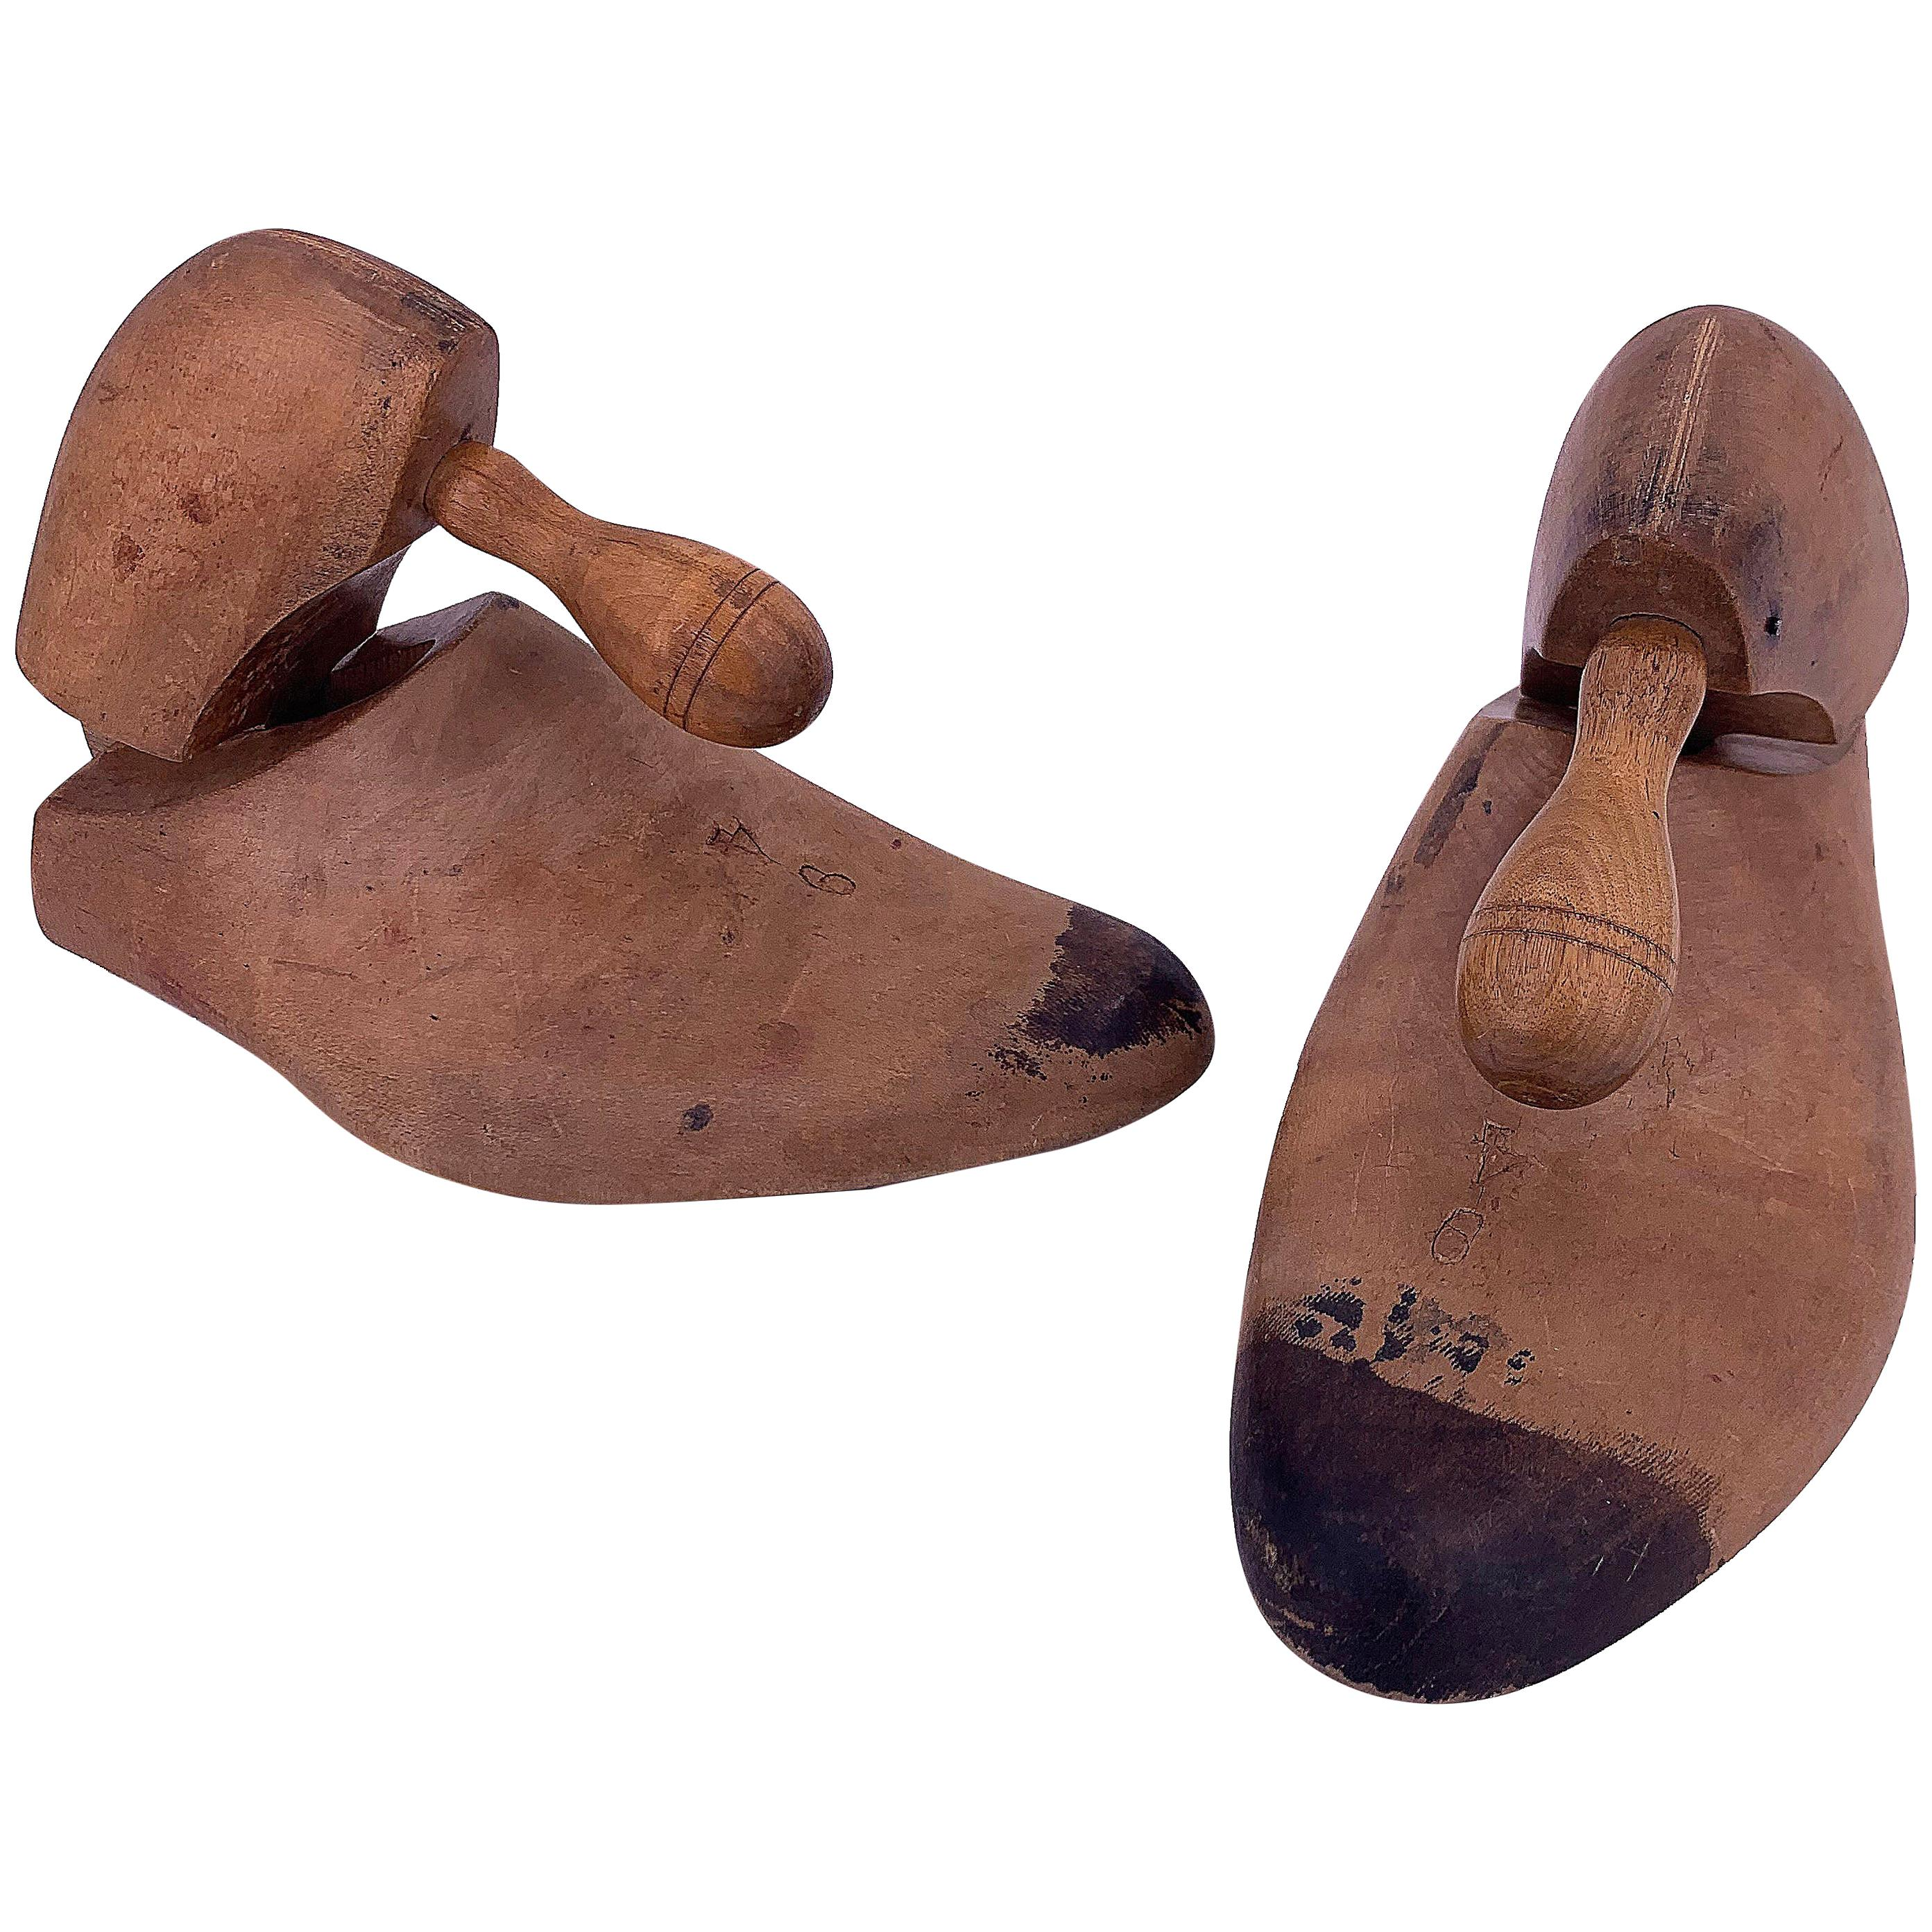 Pair of Wood Shoe Mold